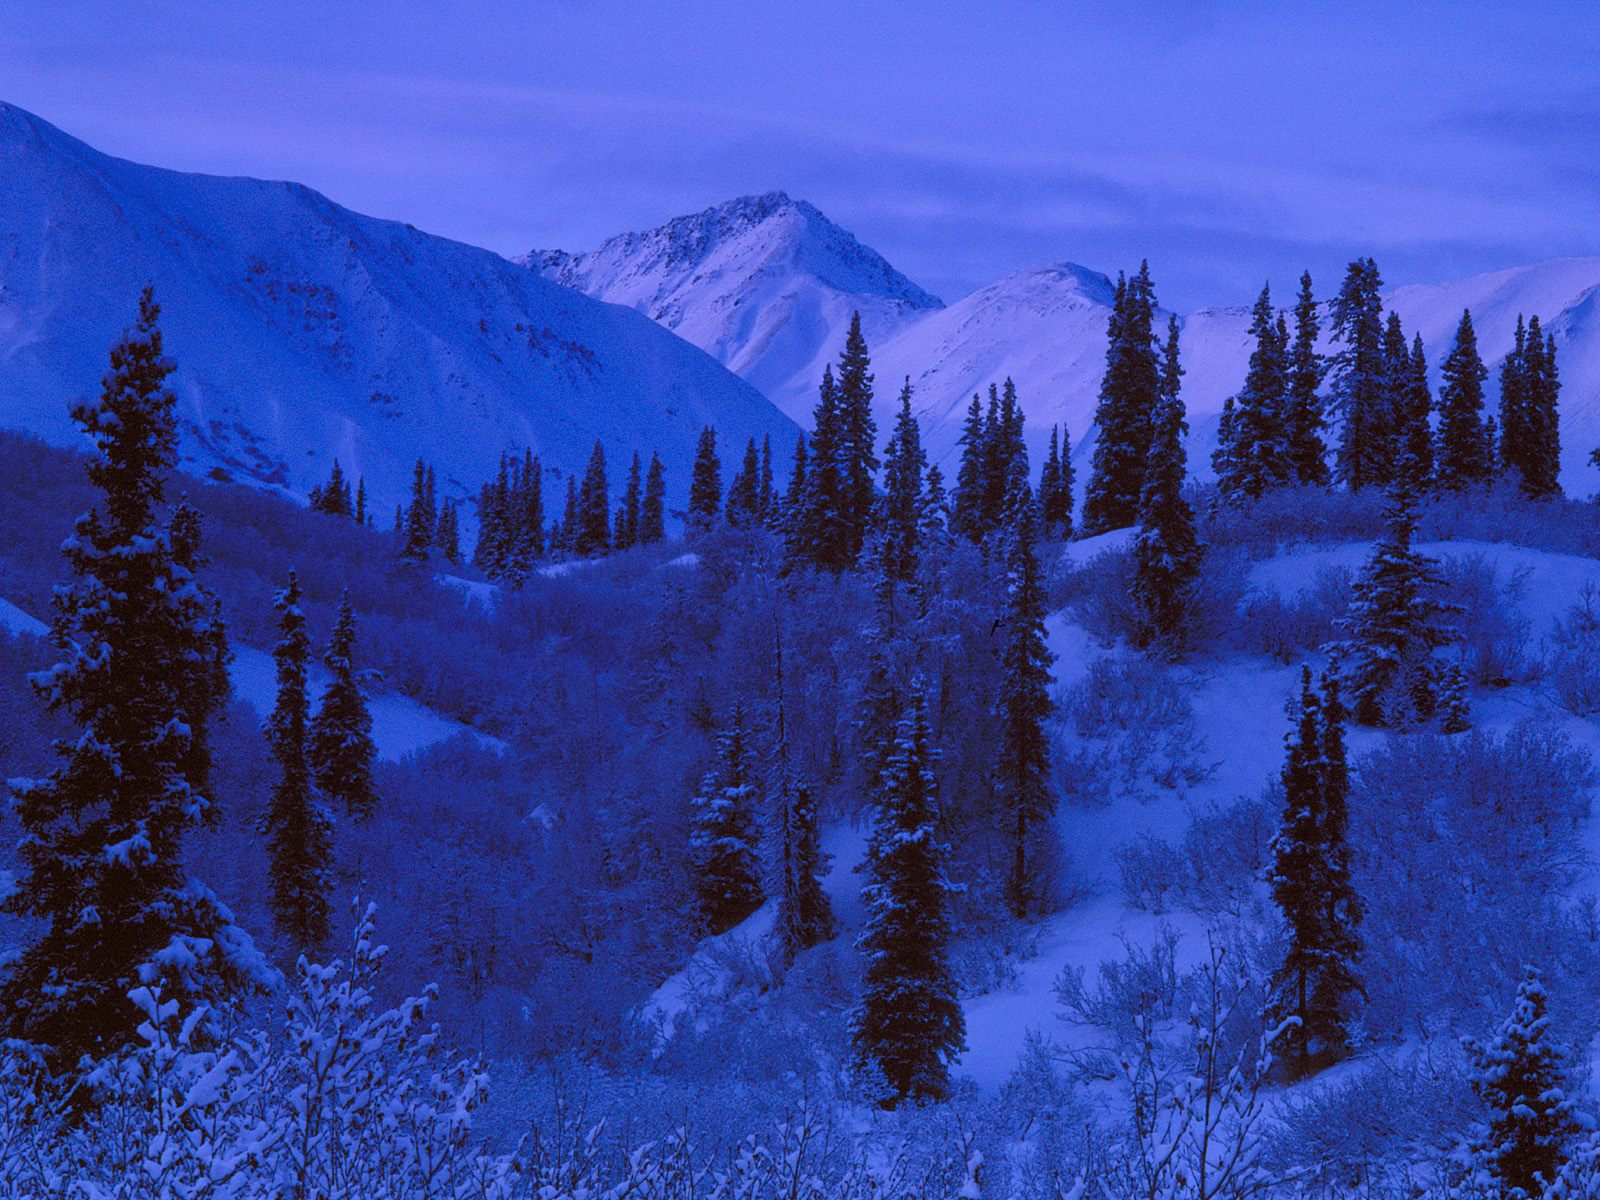 Blue snow shades wallpapers | Blue snow shades stock photos